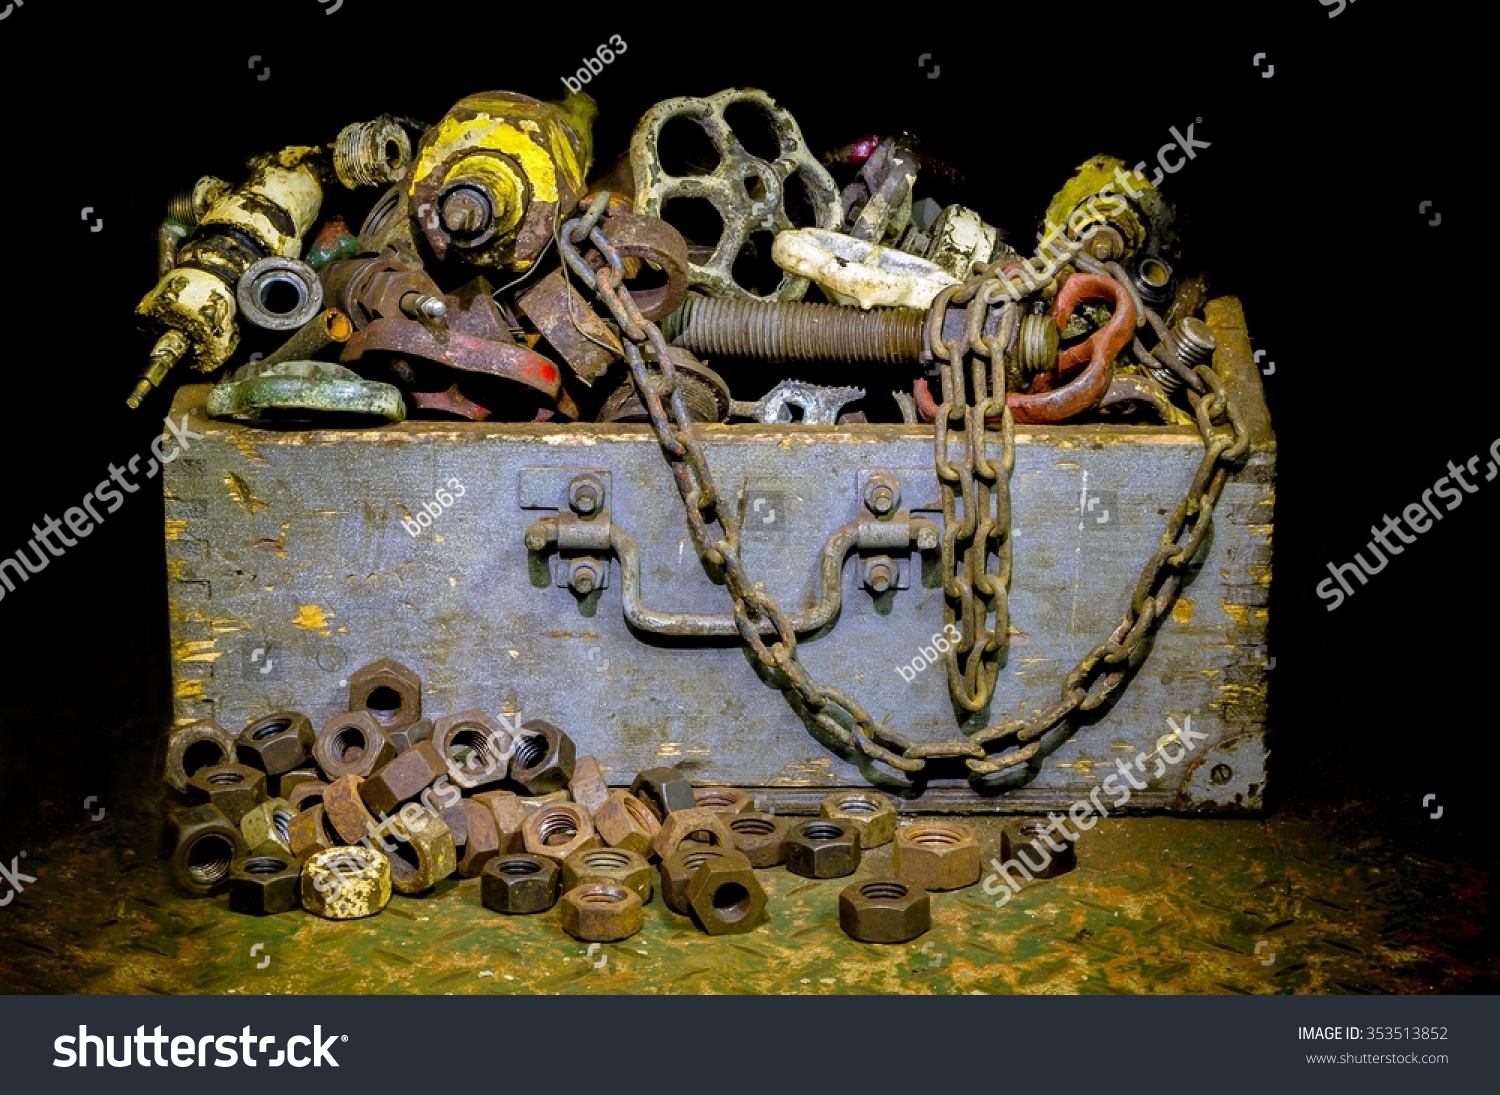 Old Rusty Technology Vintage Valves Tubes Stock Photo (Safe to Use ...